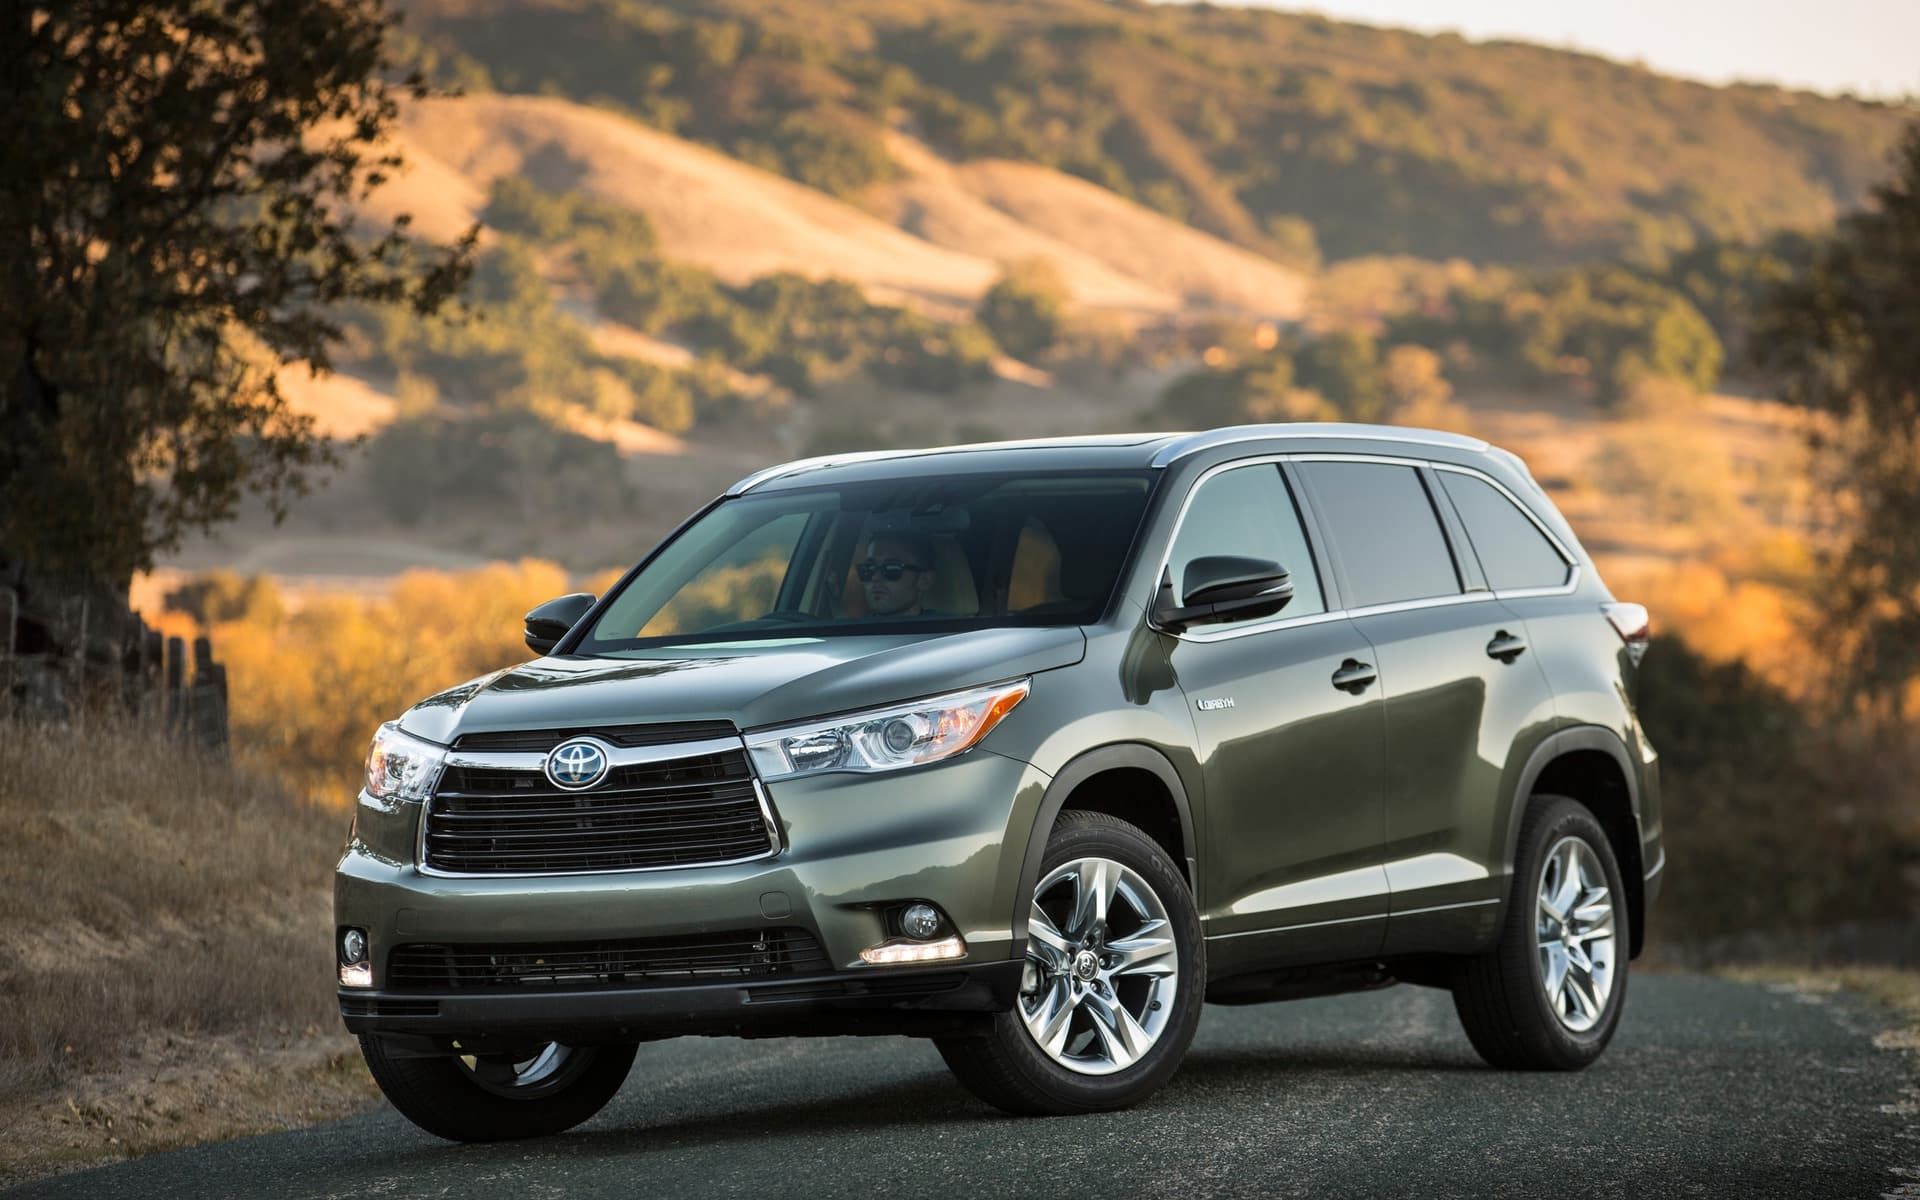 toyota highlander 2016 wallpapers hd high resolution. Black Bedroom Furniture Sets. Home Design Ideas